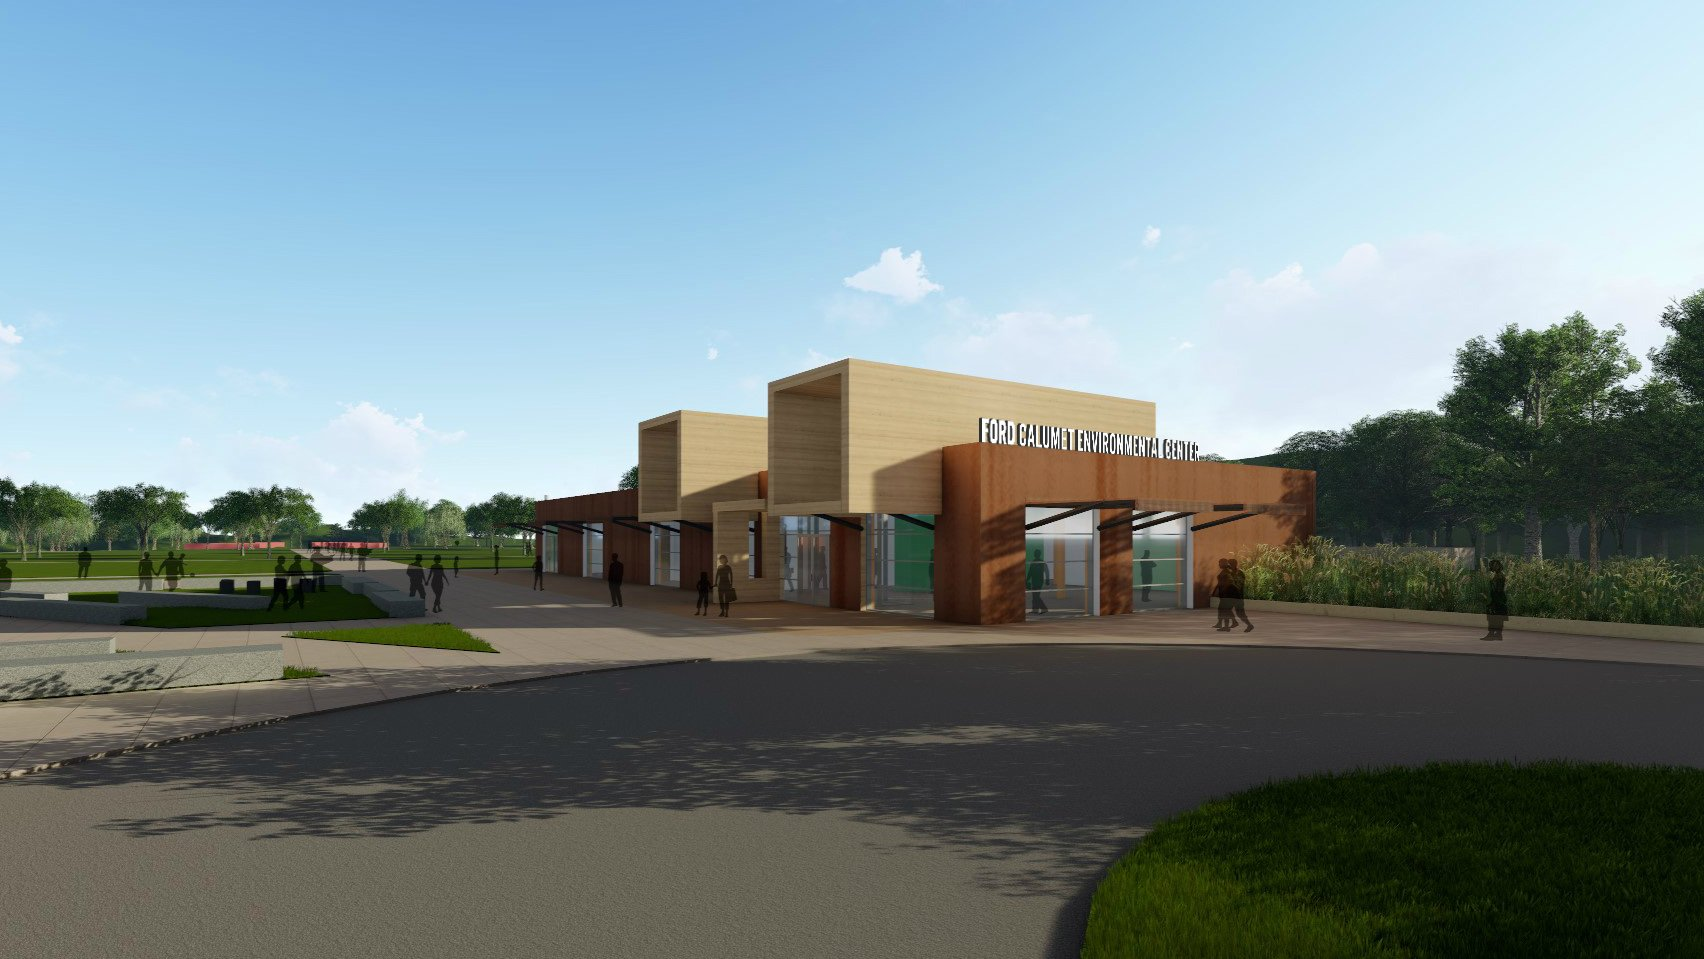 A rendering of the Ford Calumet Environmental Center, set to open in late spring or early summer. (Facebook / Ford Calumet Environmental Center)